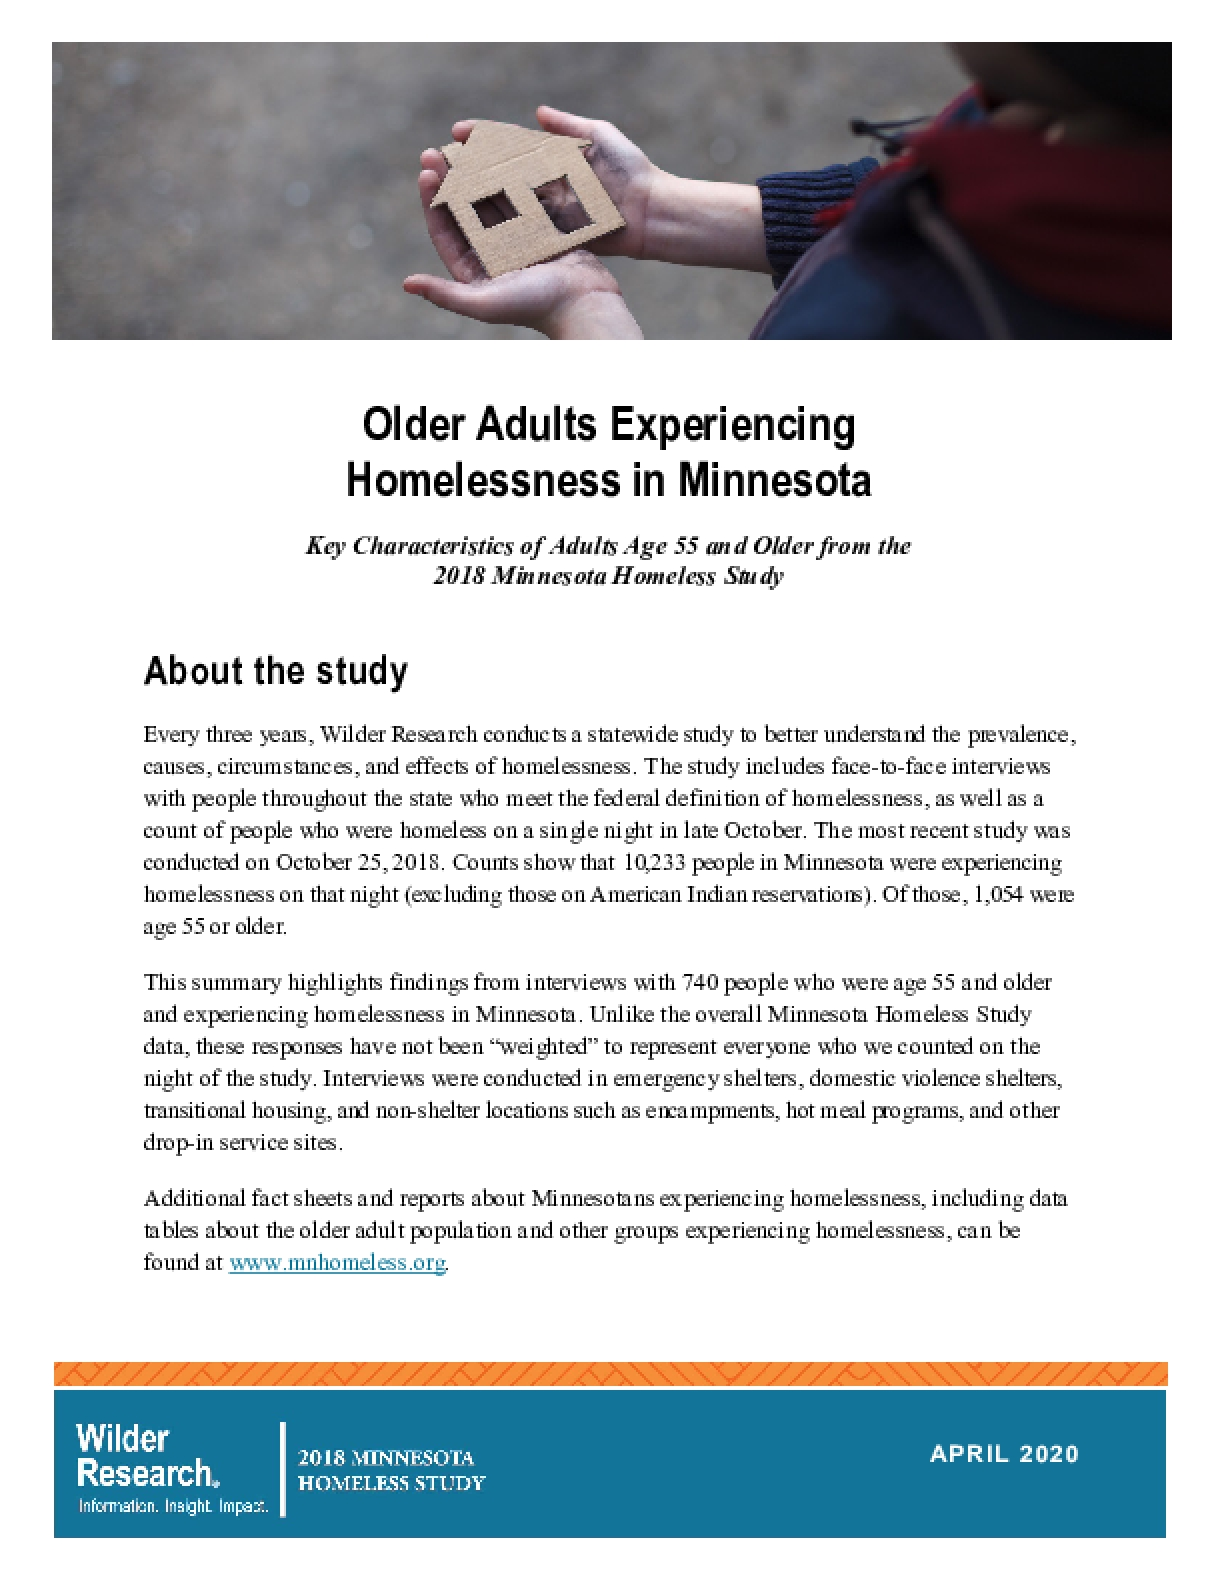 Older Adults Experiencing Homelessness in Minnesota: Key Characteristics of Adults Age 55 and Older from the 2018 Minnesota Homeless Study